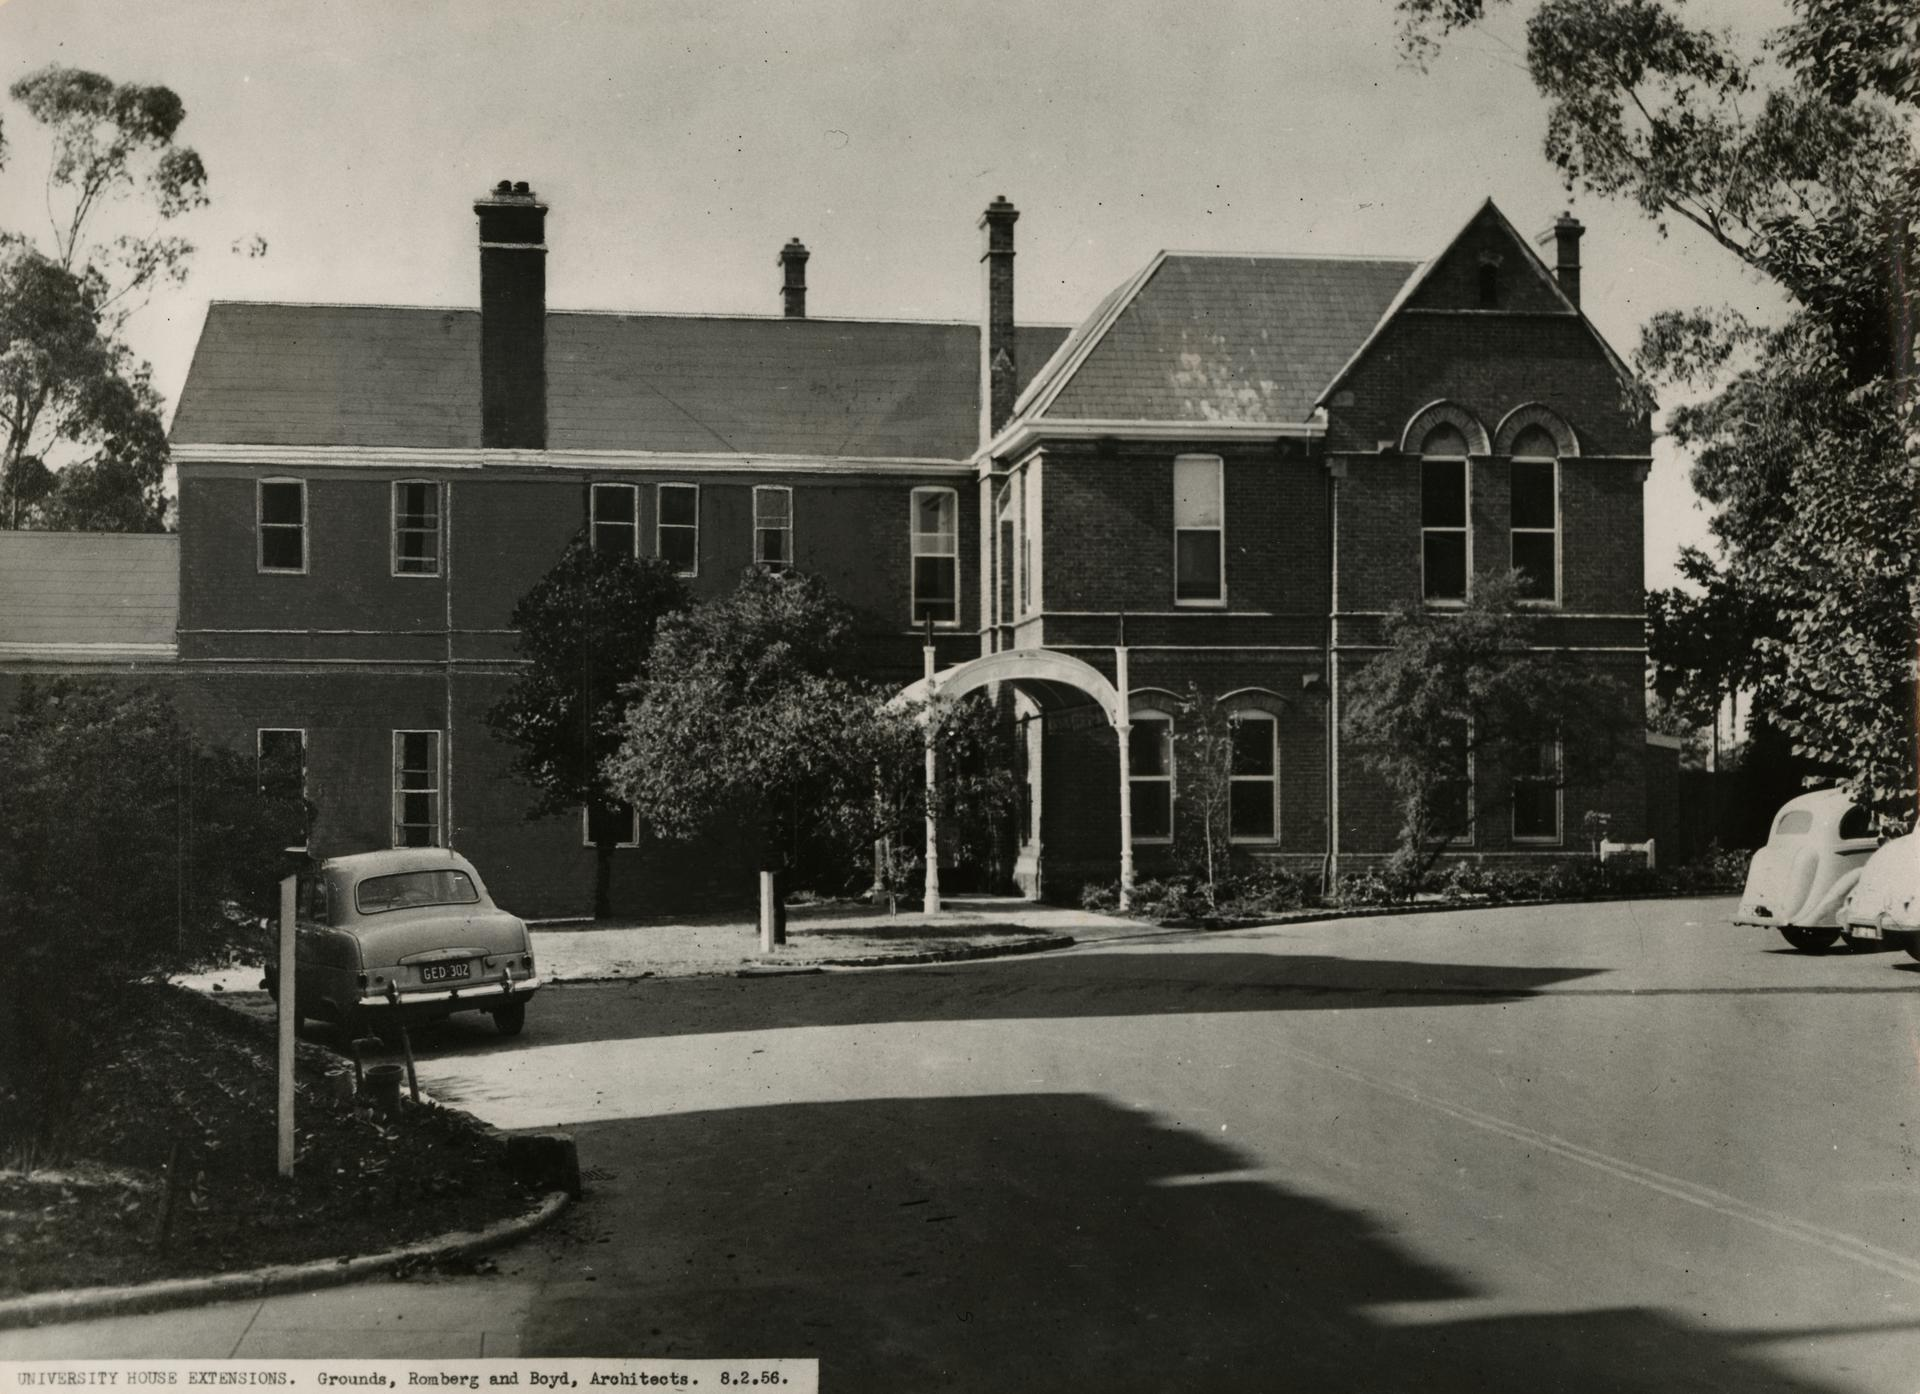 University House extensions, 1956